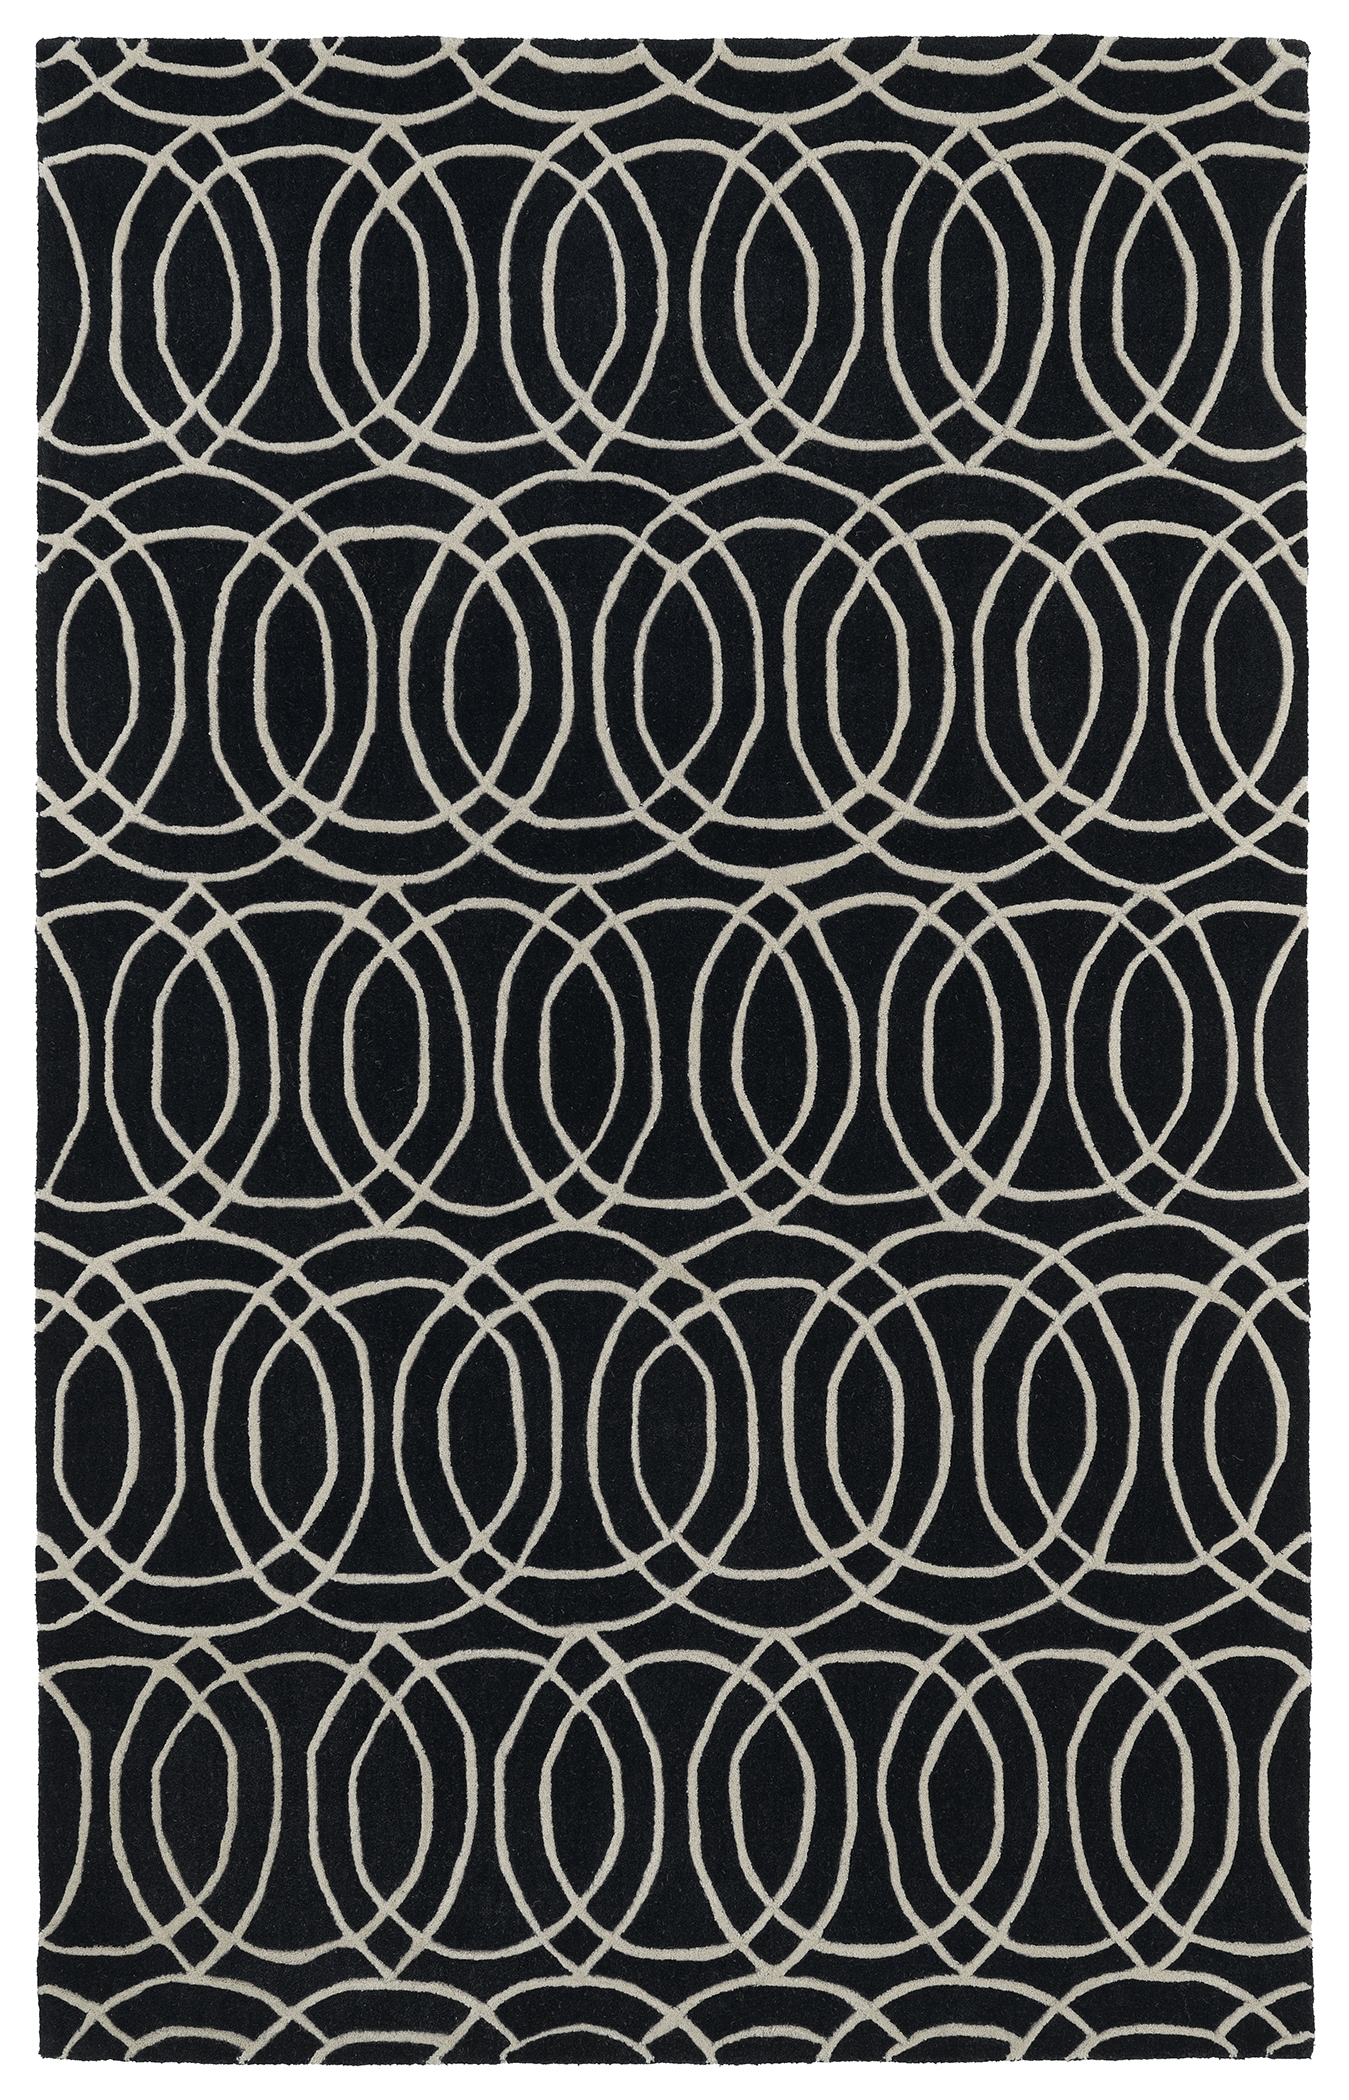 Kaleen Revolution REV02 02 Black Rug